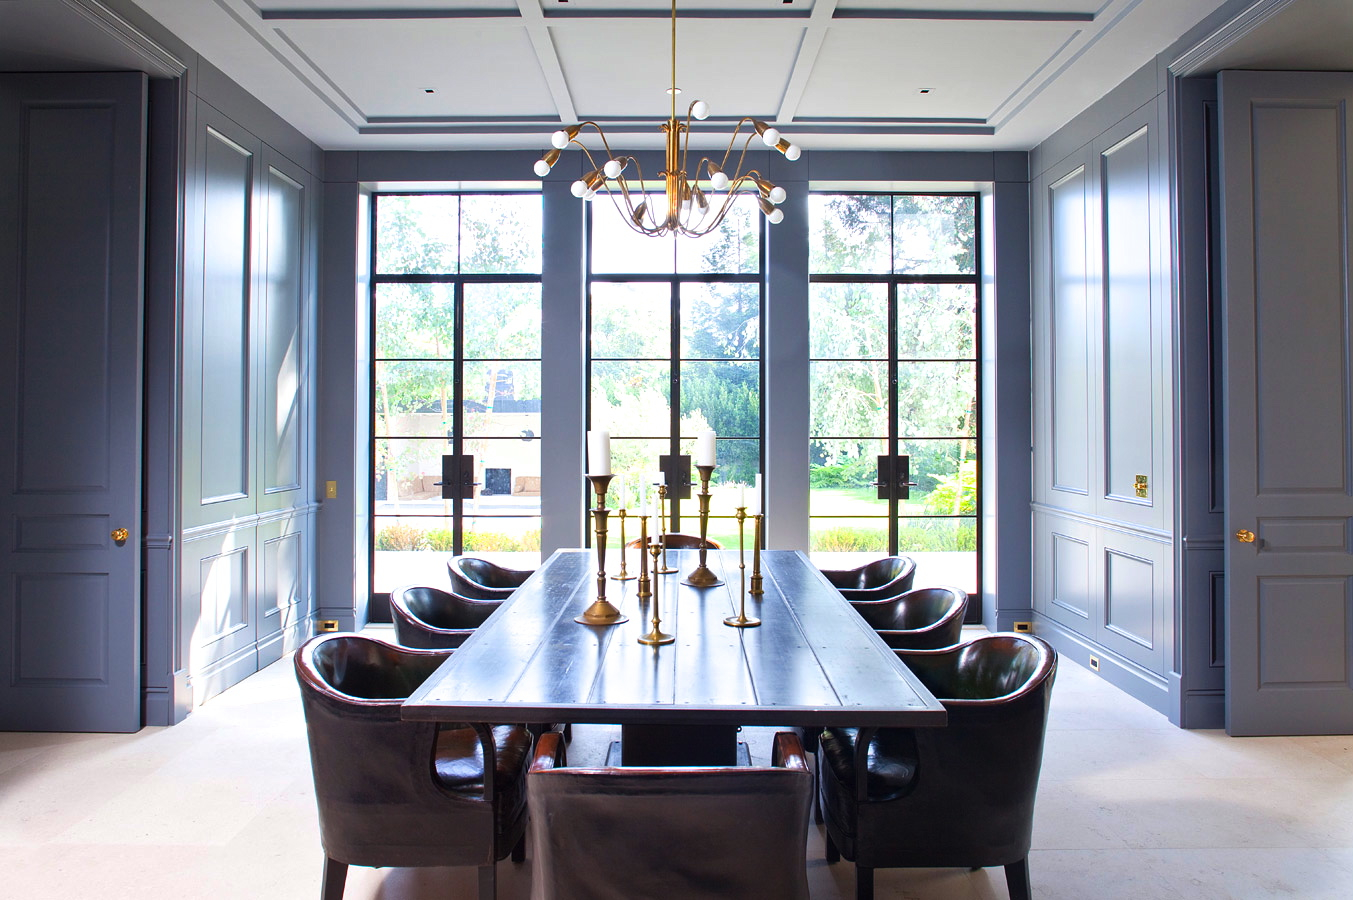 formal living room sofa the candidate ad maker are dining rooms becoming obsolete freshome com collect this idea william hefner paneled walls doors gray blue cococozy interior design leather chairs encasement windows